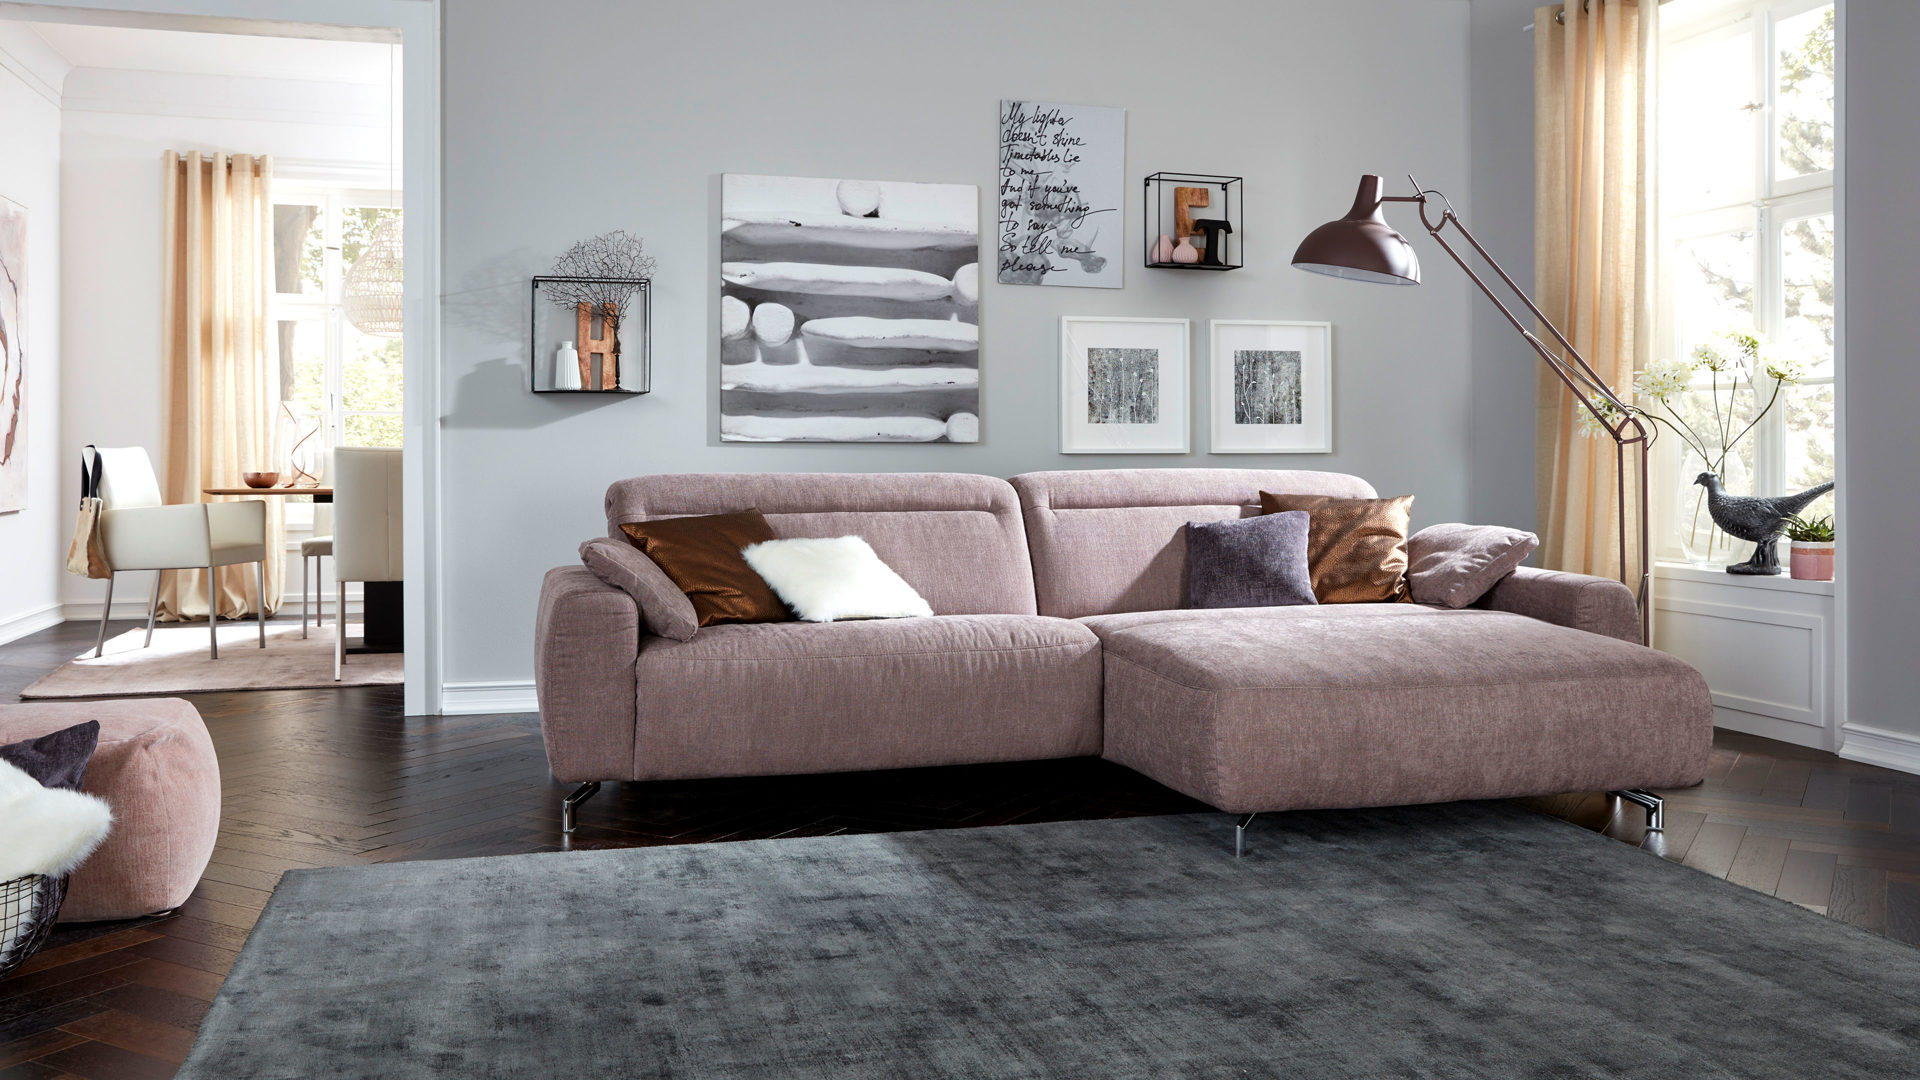 mobel boer coesfeld mobel boer interliving interliving sofa serie 4151 eckkombination lavendelfarbener stoffbezug 635 95 schenkelmass ca